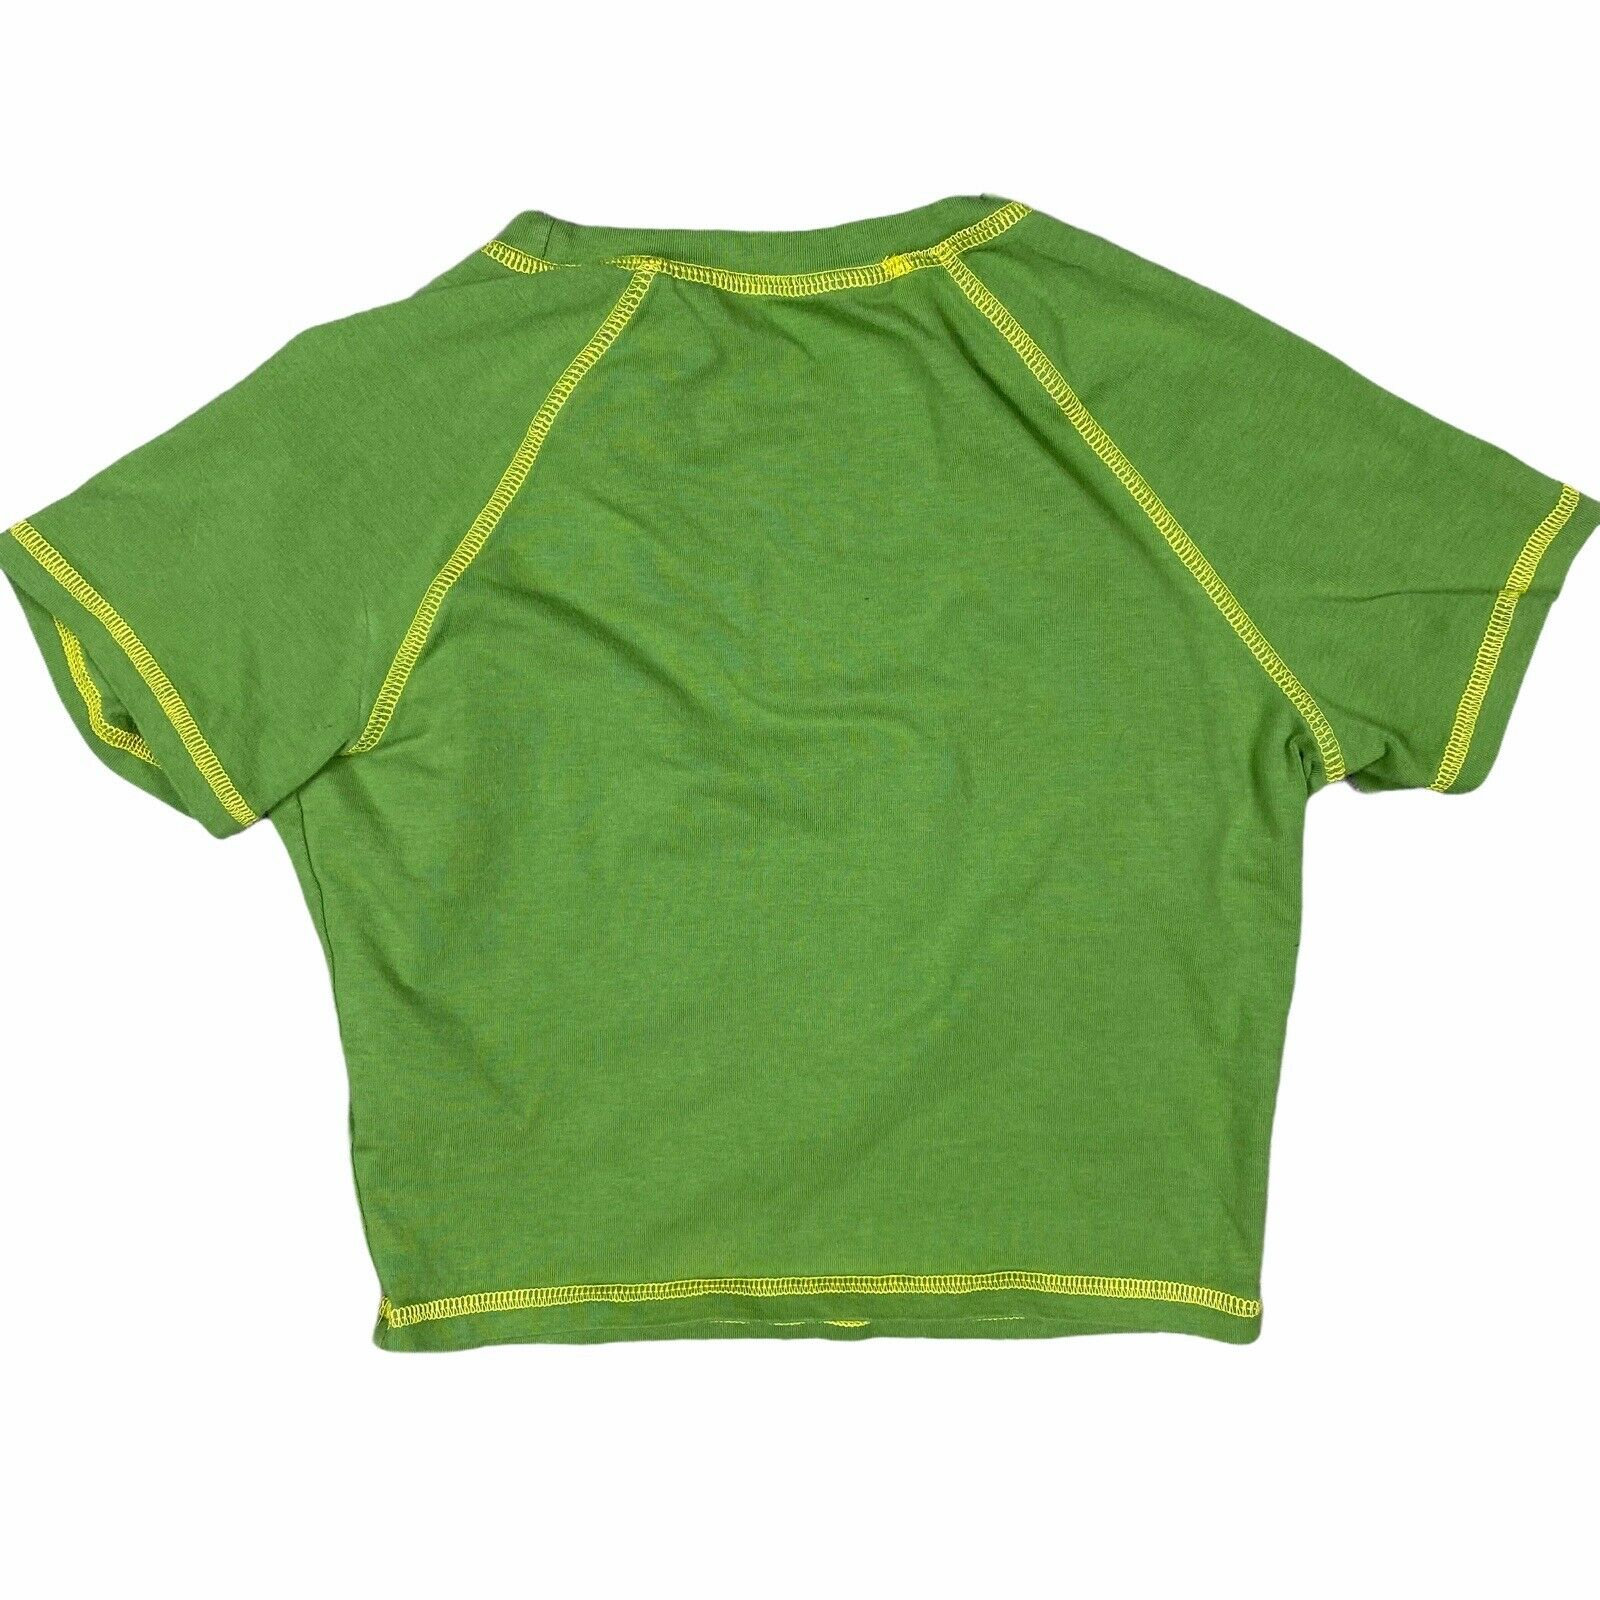 Vintage 90s Y2K Style Green Fairycore Grunge Cybe… - image 8